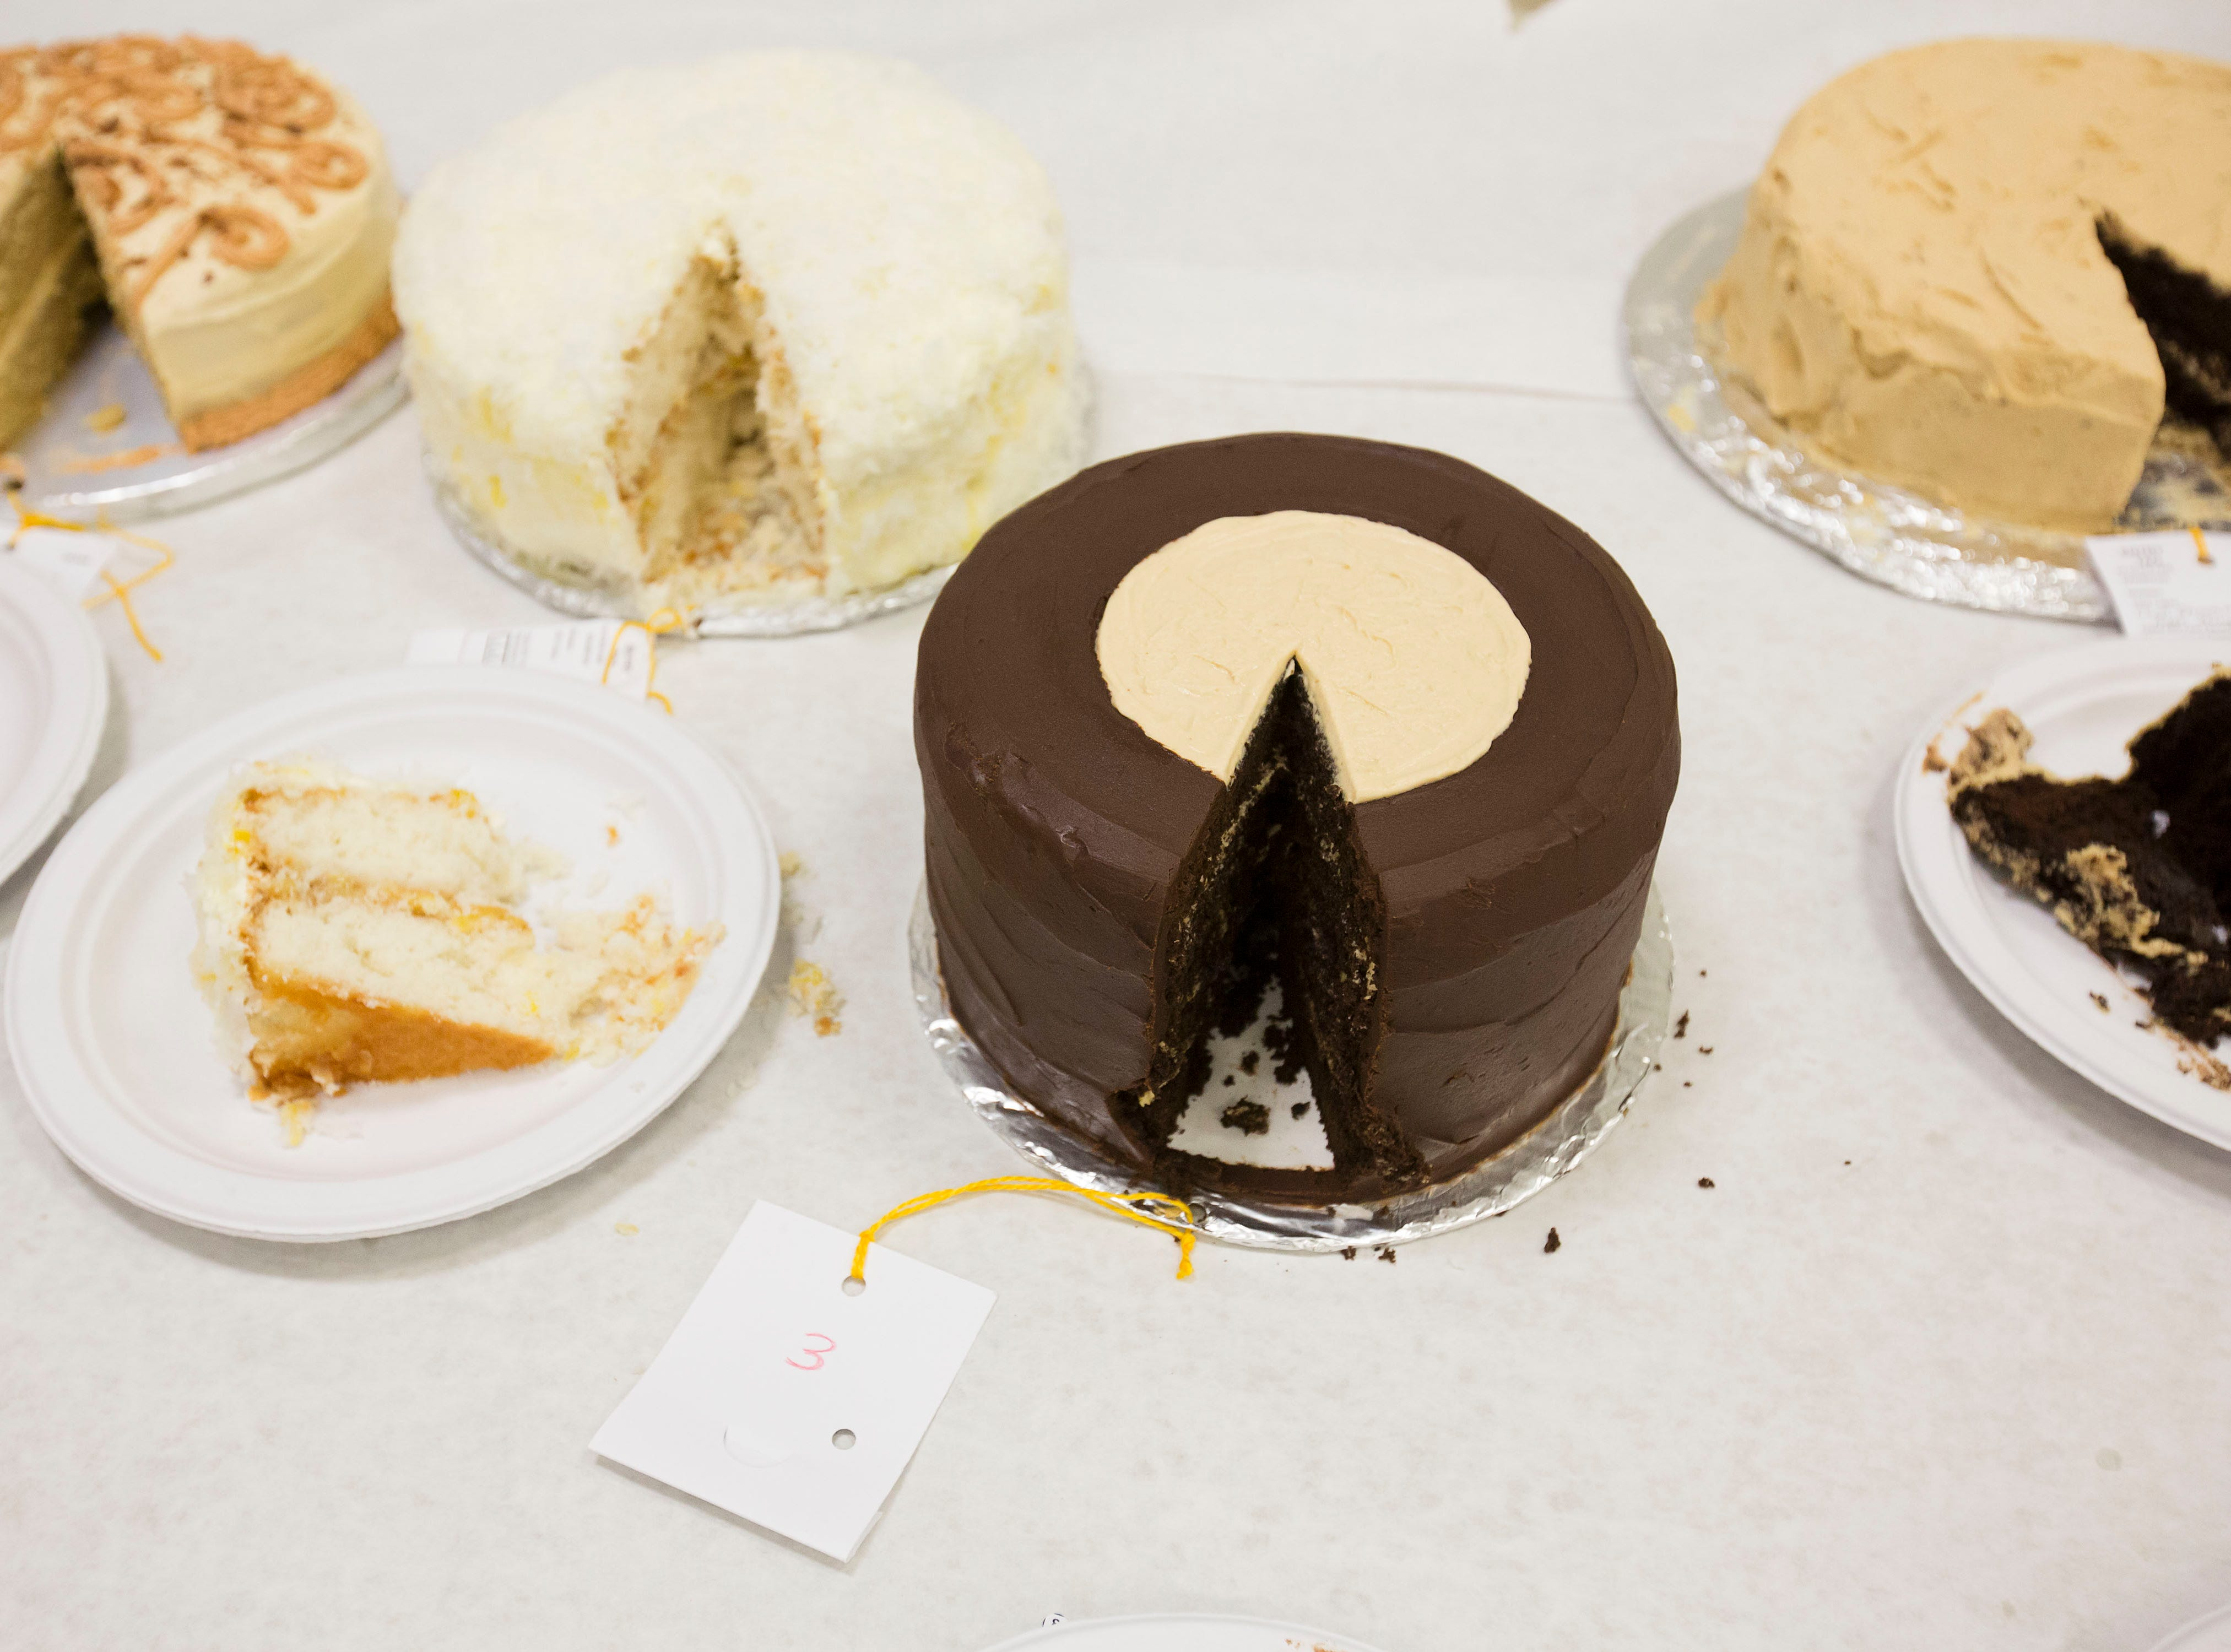 """Buckeye won third place in the category of """"Favorite Cake"""" at Tuesday's taste testing at the Kentucky State Fair on  August 14, 2018."""